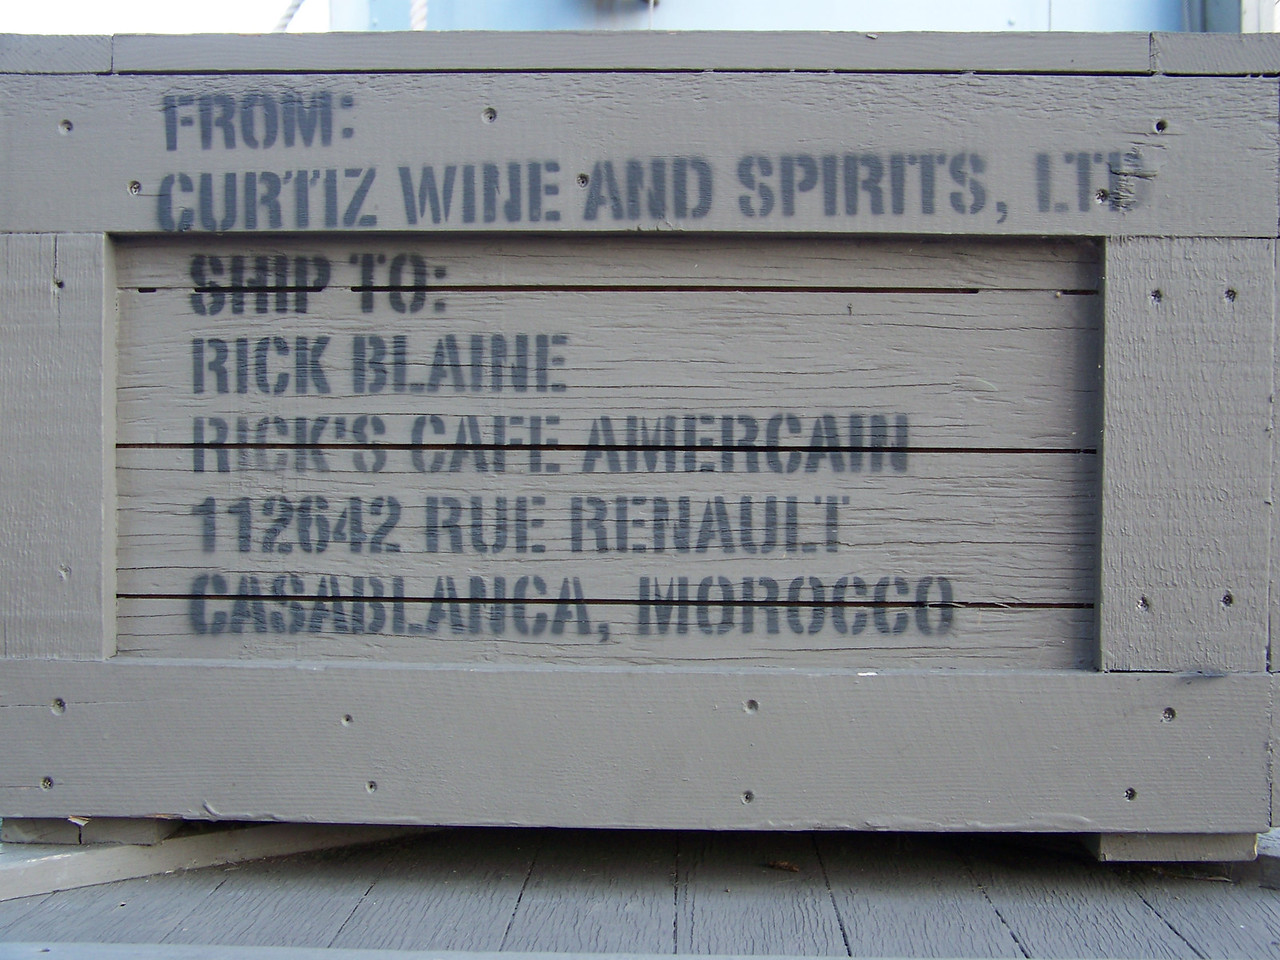 This crate is a reference to Casablanca--Rick Blaine was Humphrey Bogart's character, and Michael Curtiz directed the film.<br /> [Disney's Hollywood Studios]